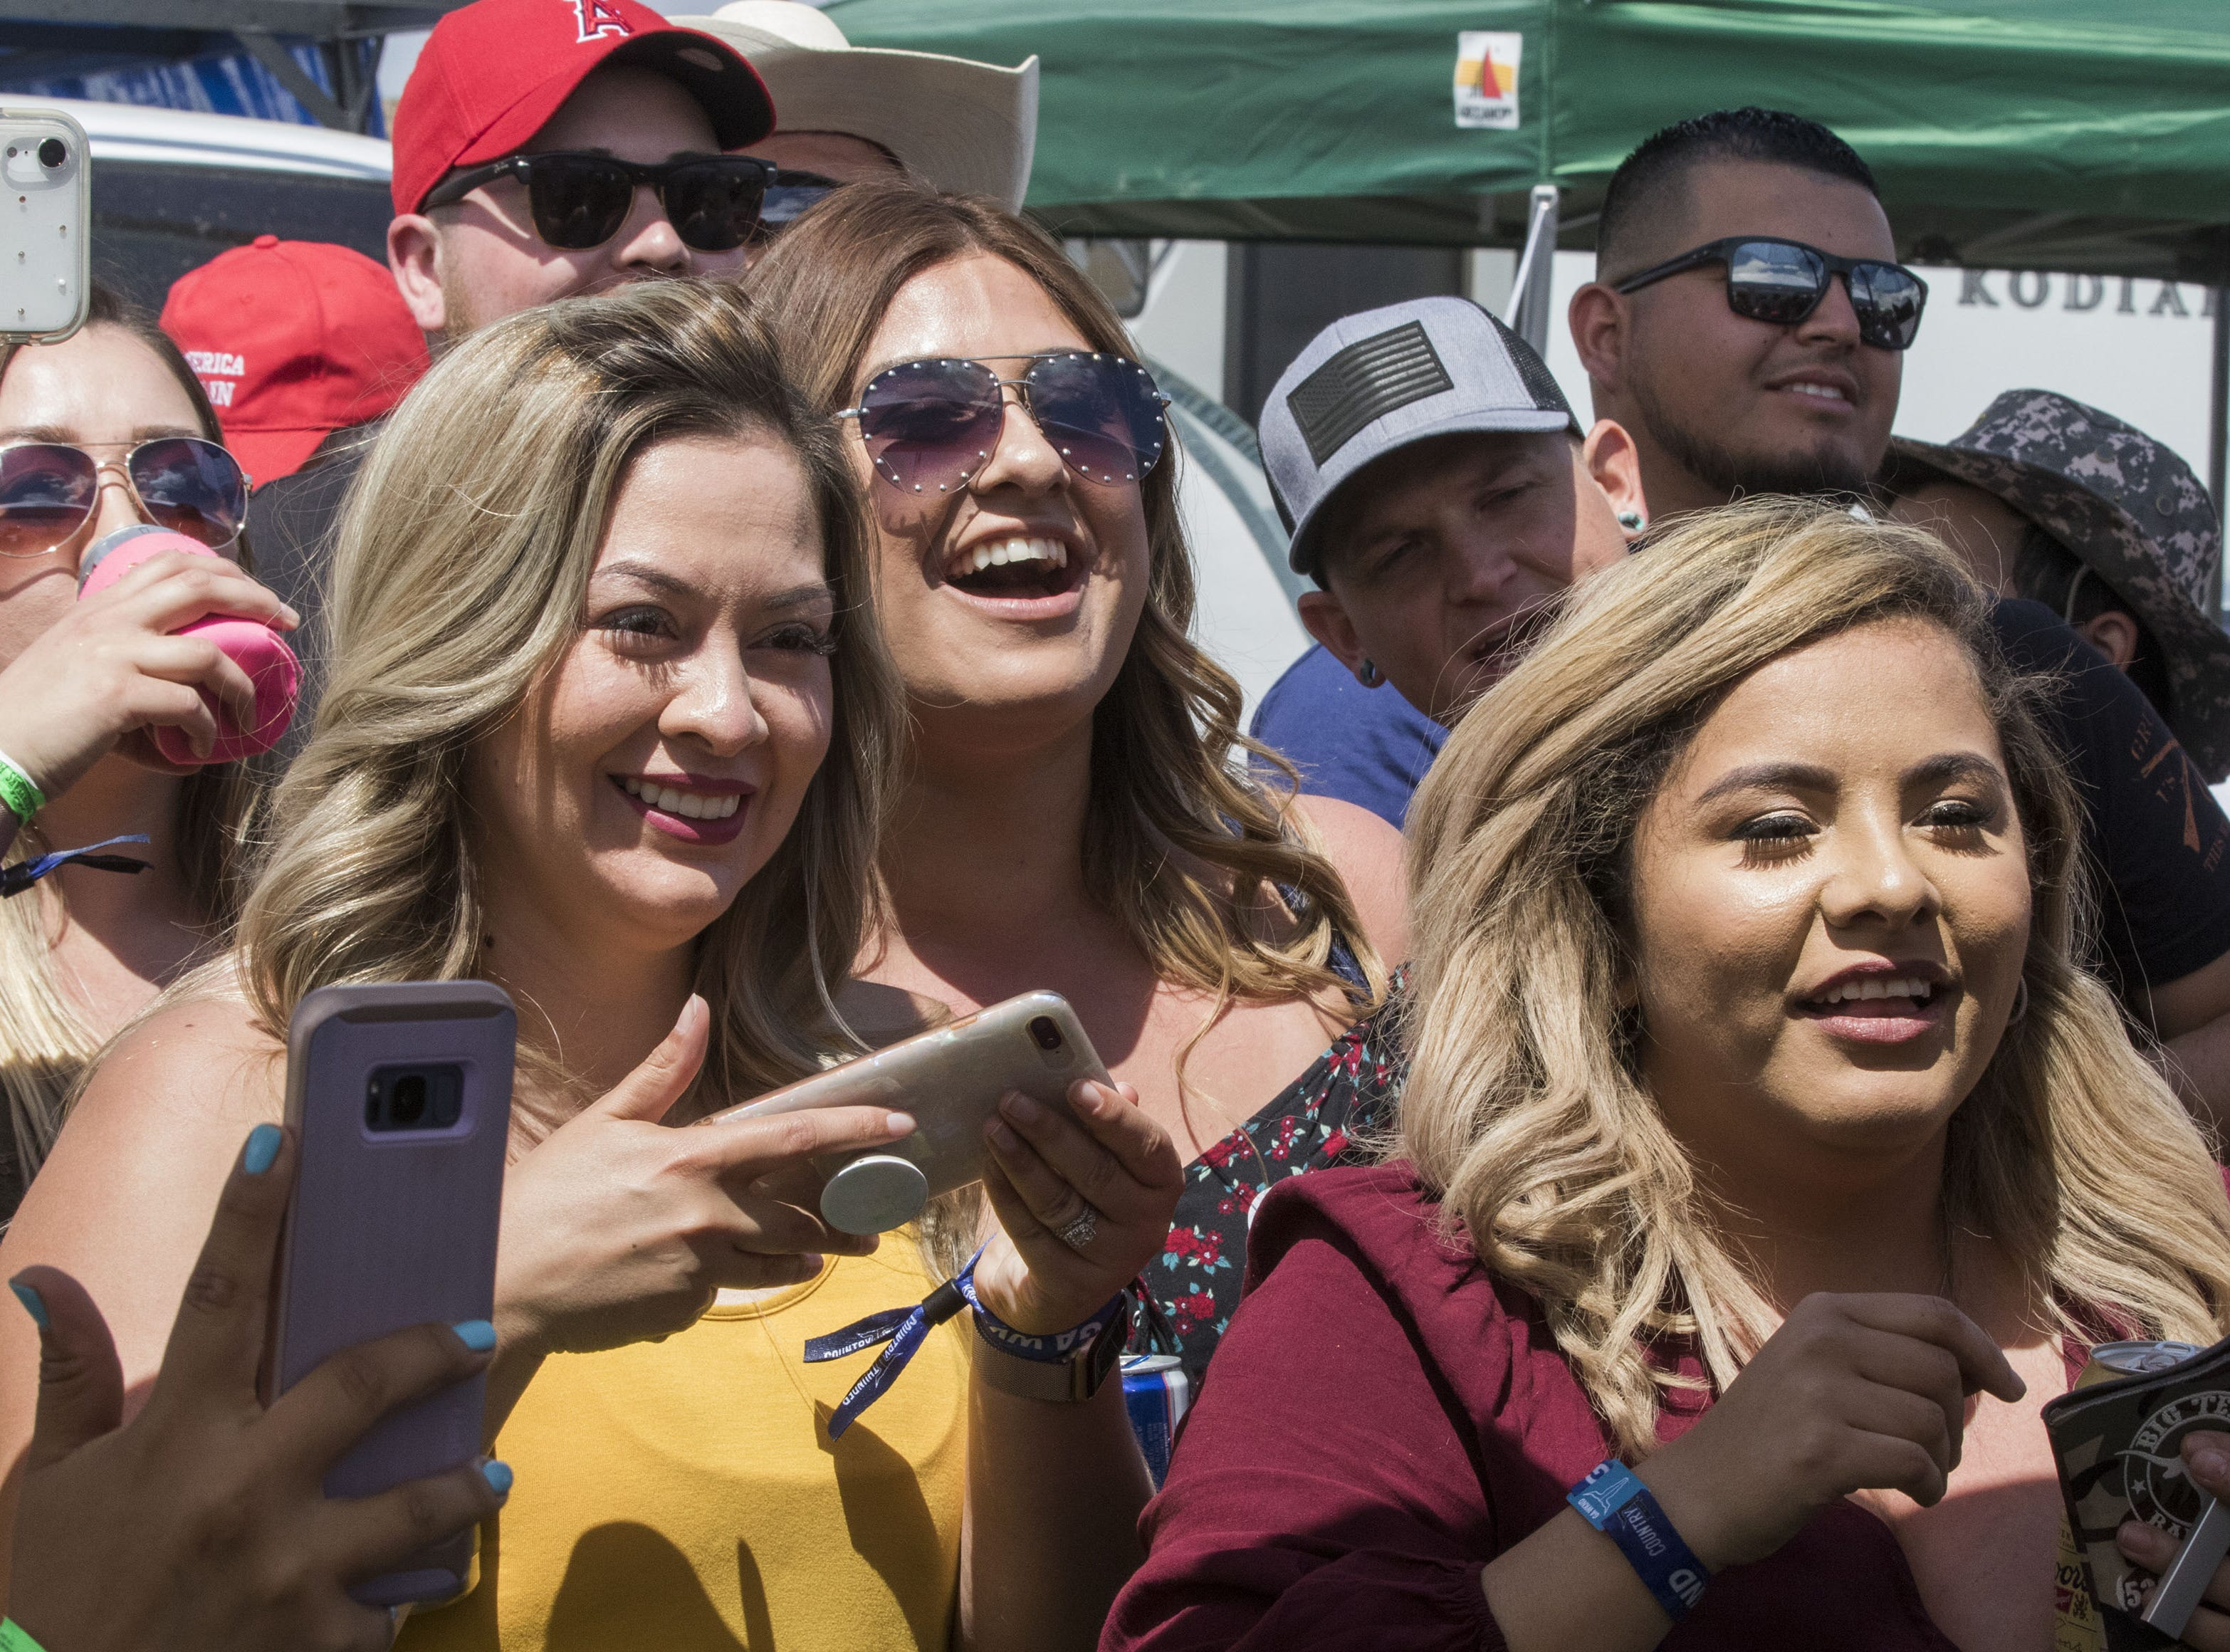 Fans cheer on their favorite Beer Olympian during the beer chugging game at Country Thunder Arizona Friday, April 12, 2019, in Florence, Arizona.